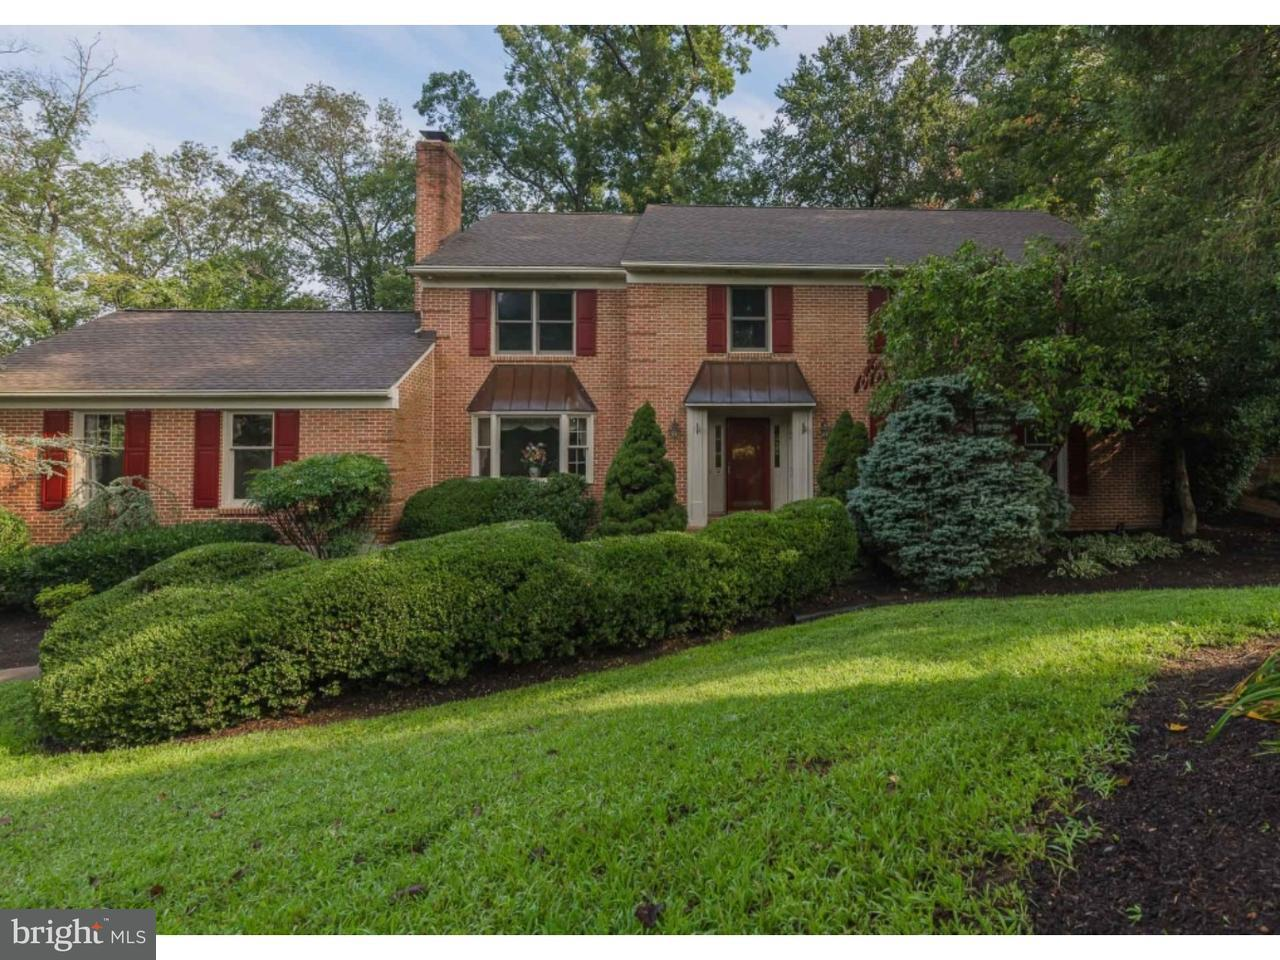 Single Family Home for Sale at 120 JUNEBERRY Court Hockessin, Delaware 19707 United States